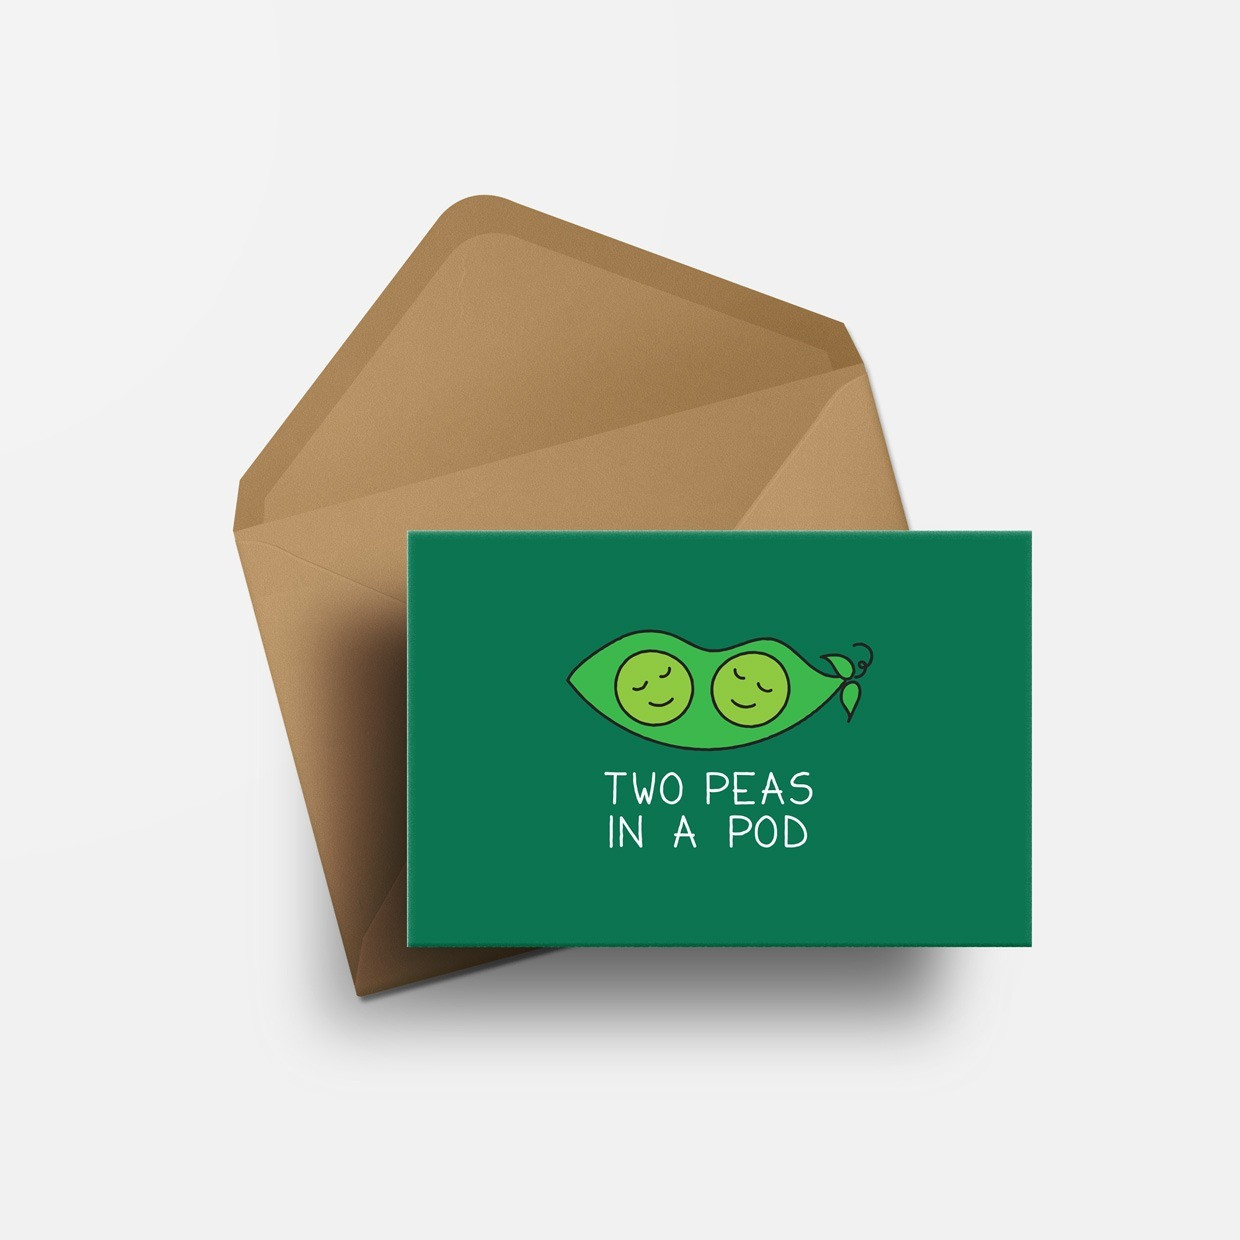 The TWO PEAS IN A POD card - verde